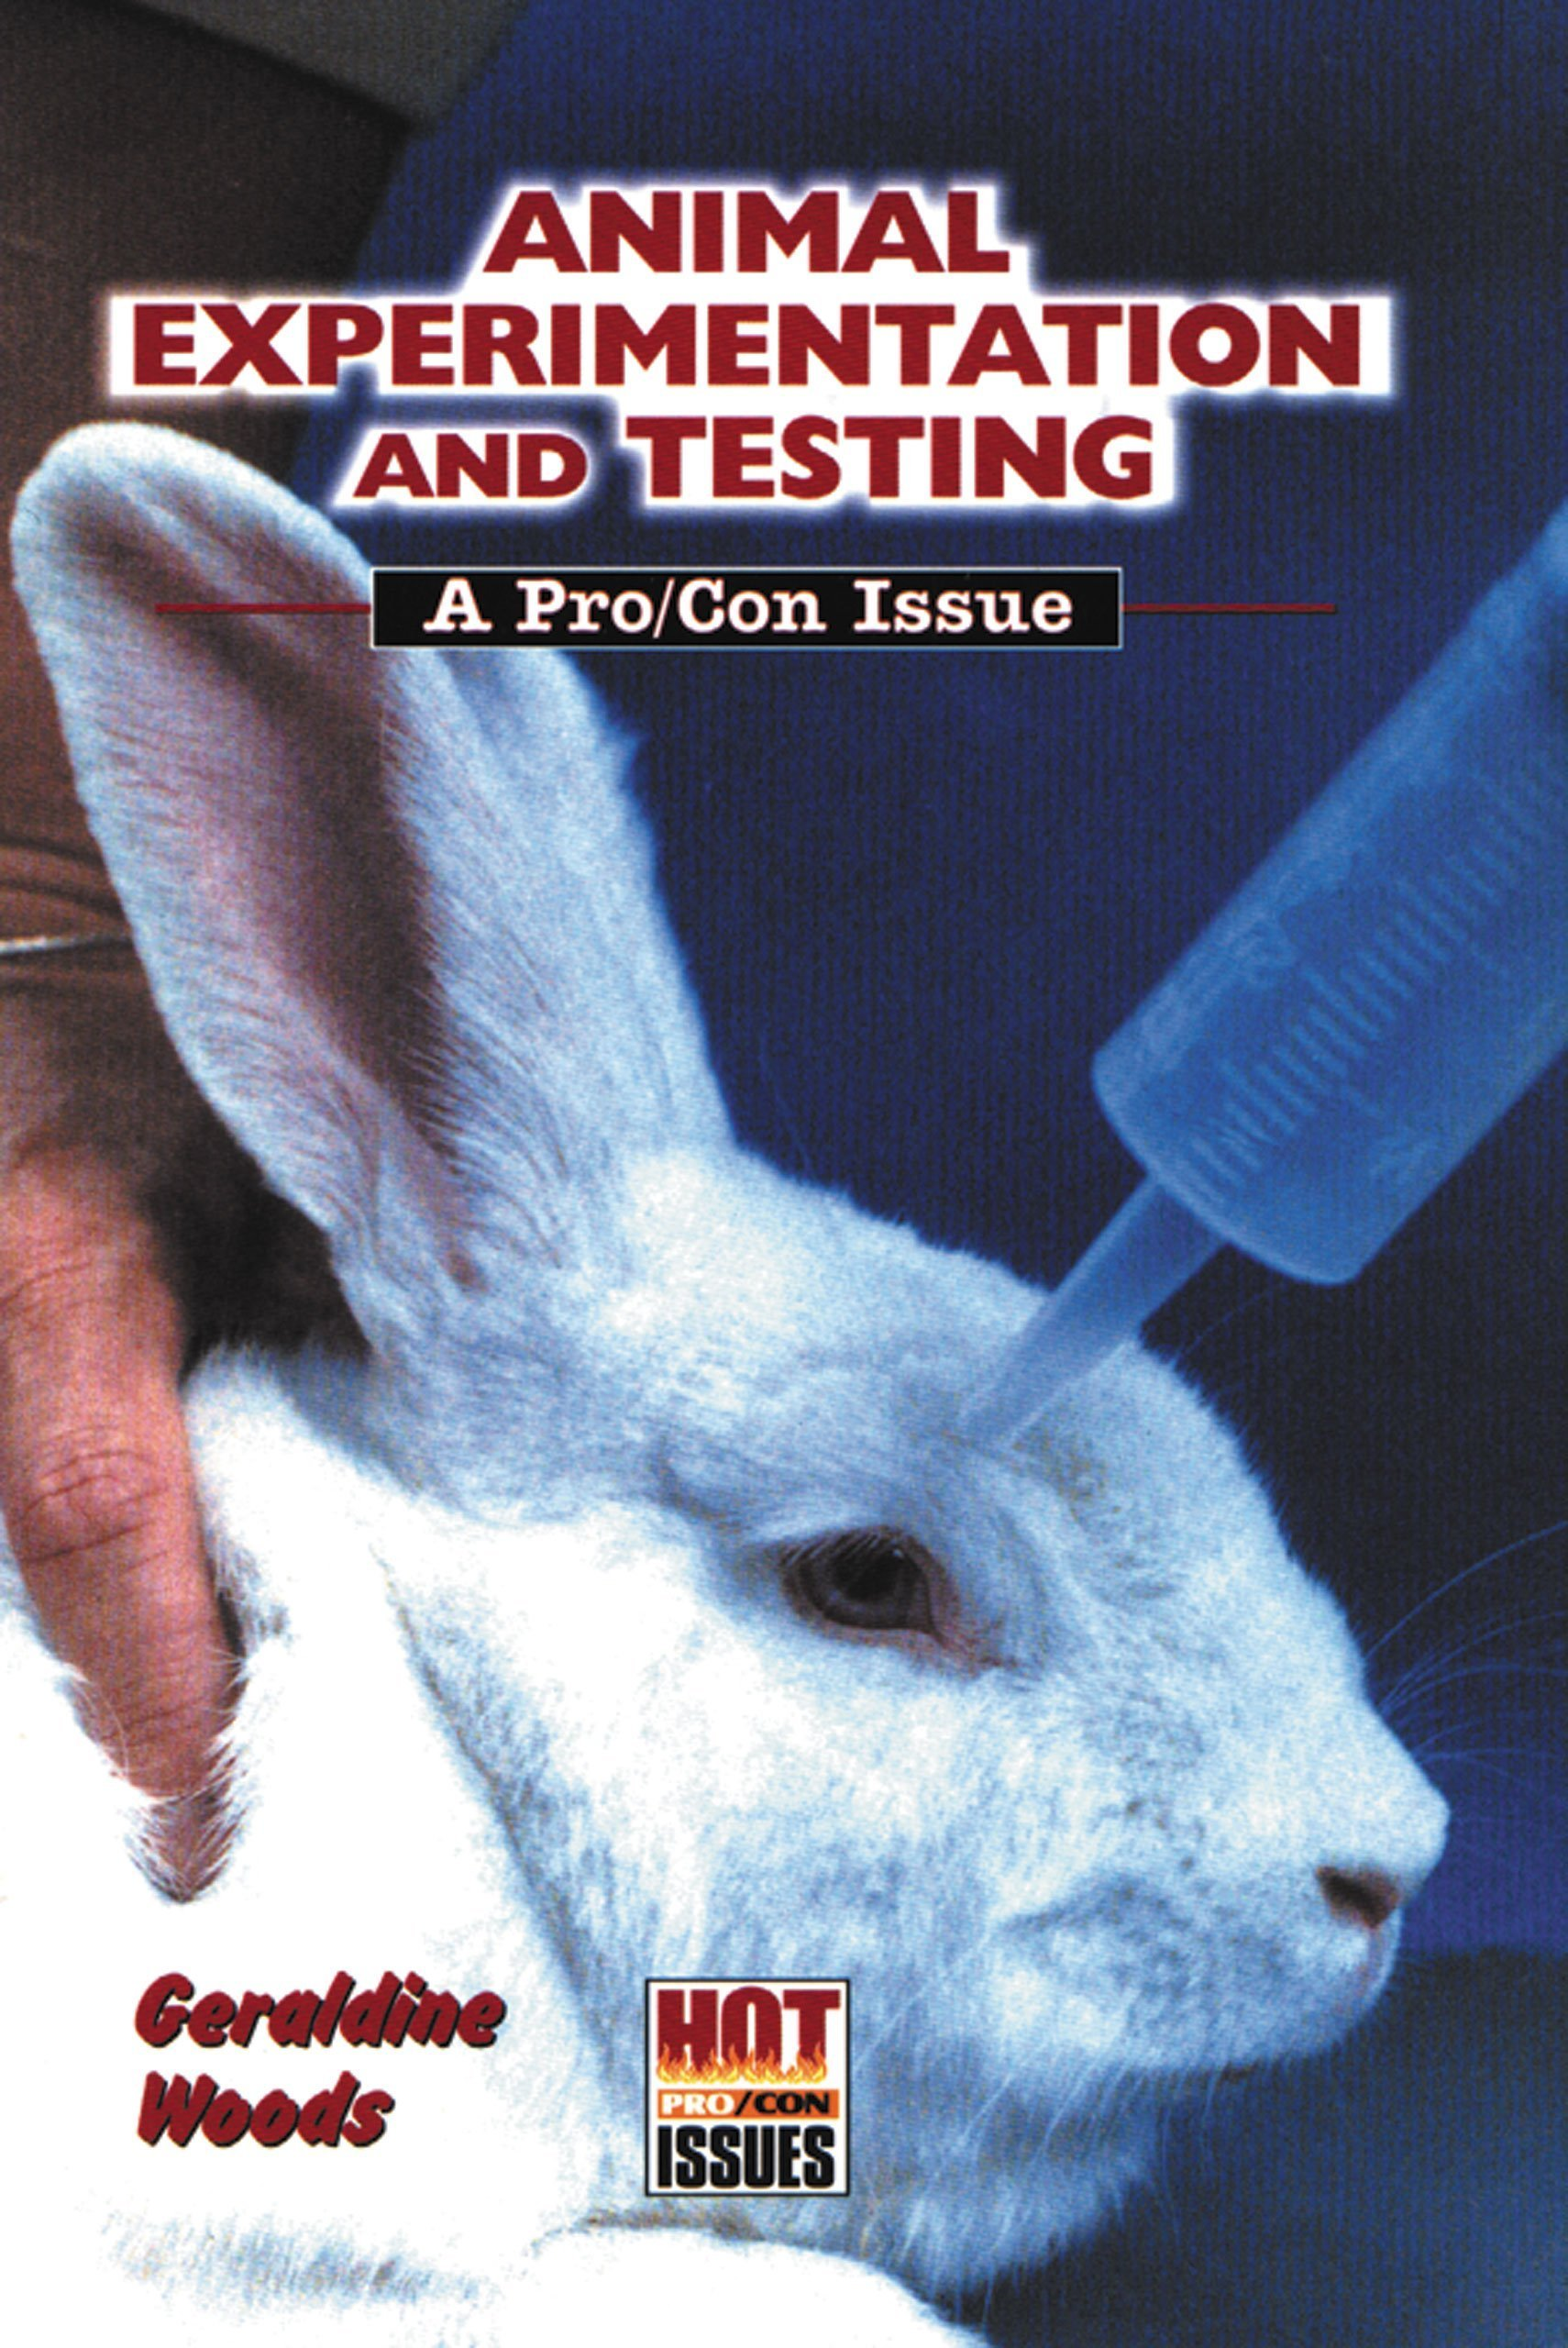 com animal experimentation and testing a pro con issue com animal experimentation and testing a pro con issue hot pro con issues 9780766011915 geraldine woods books